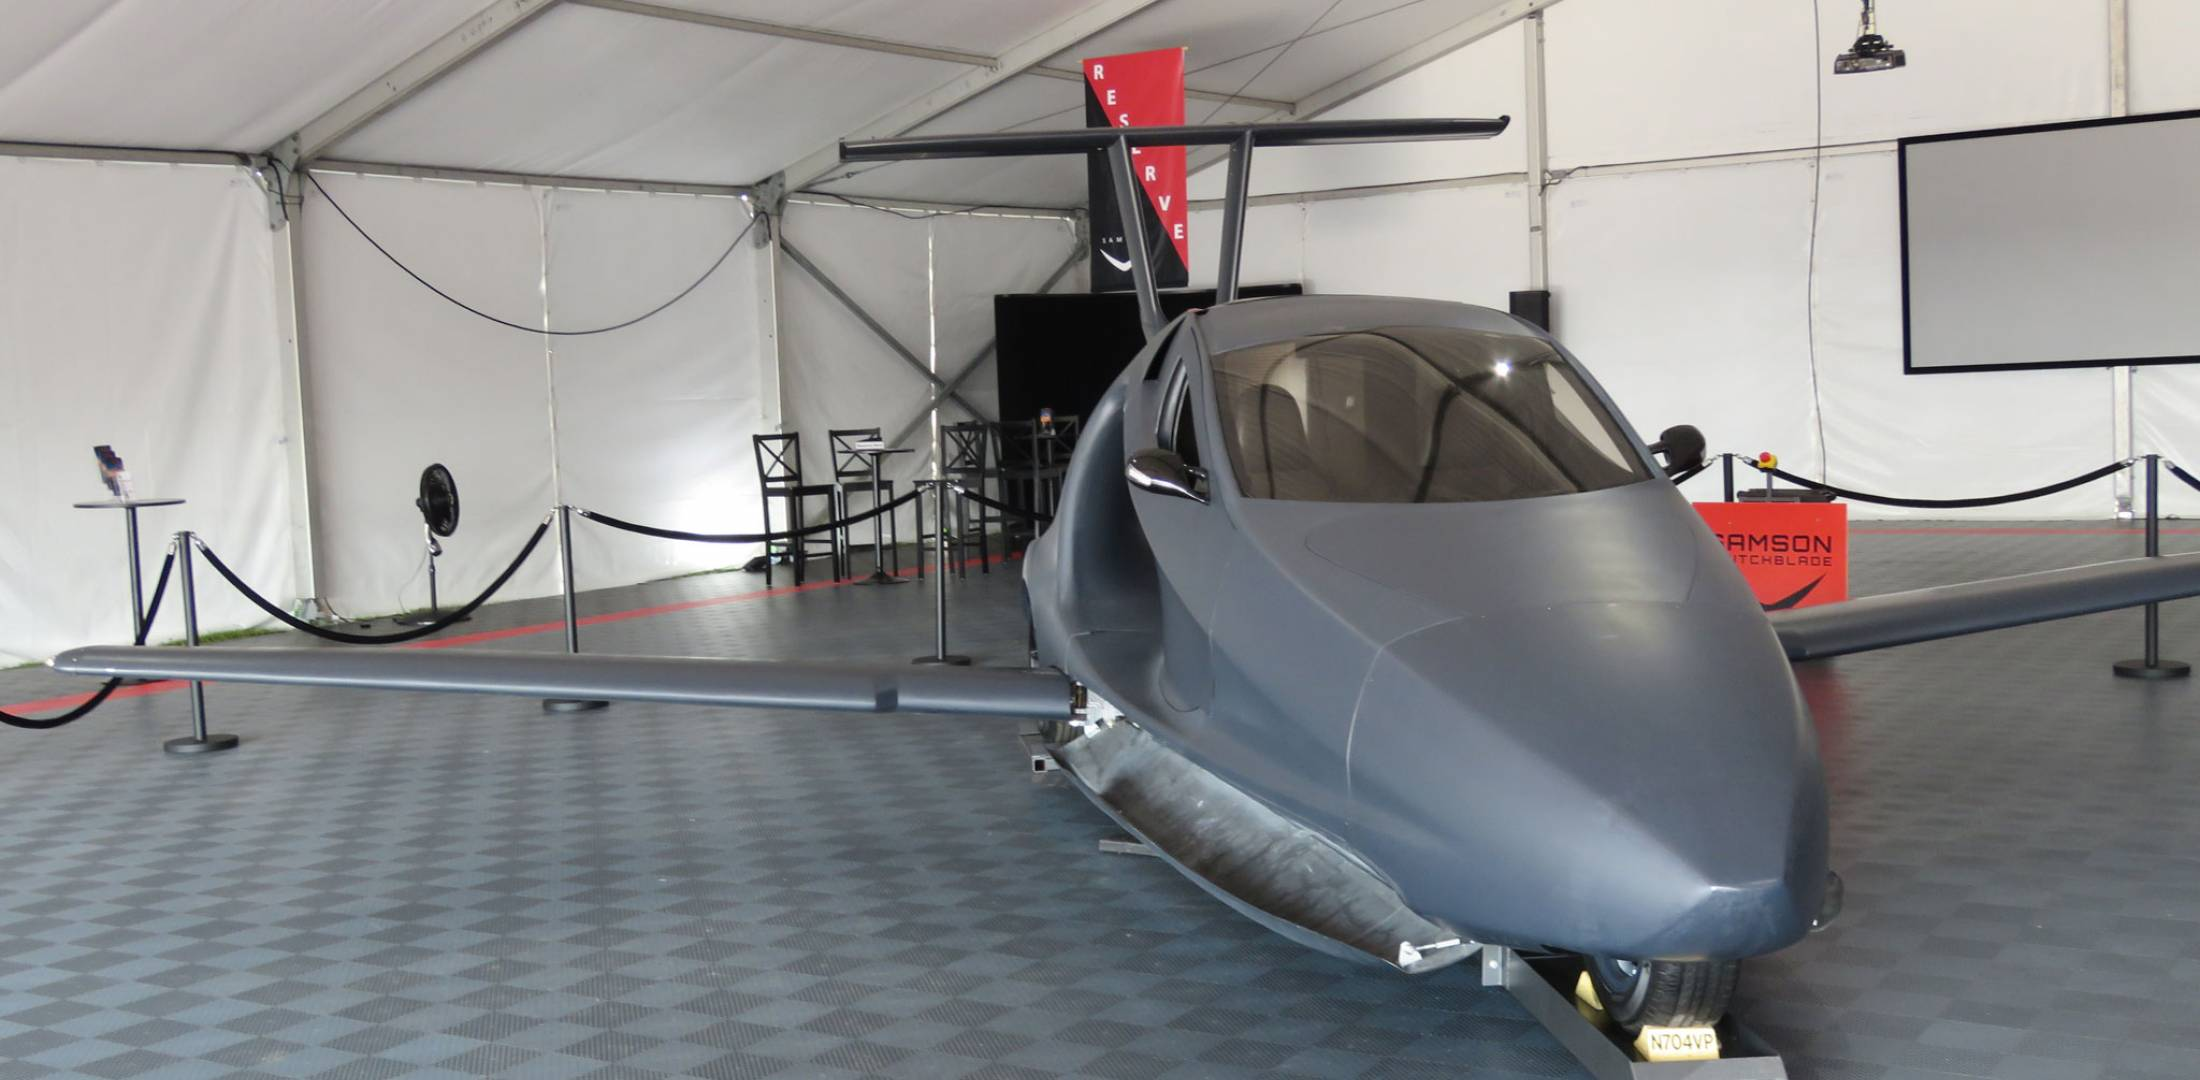 Switchblade Flying Car To Fly Soon | General Aviation News: Aviation